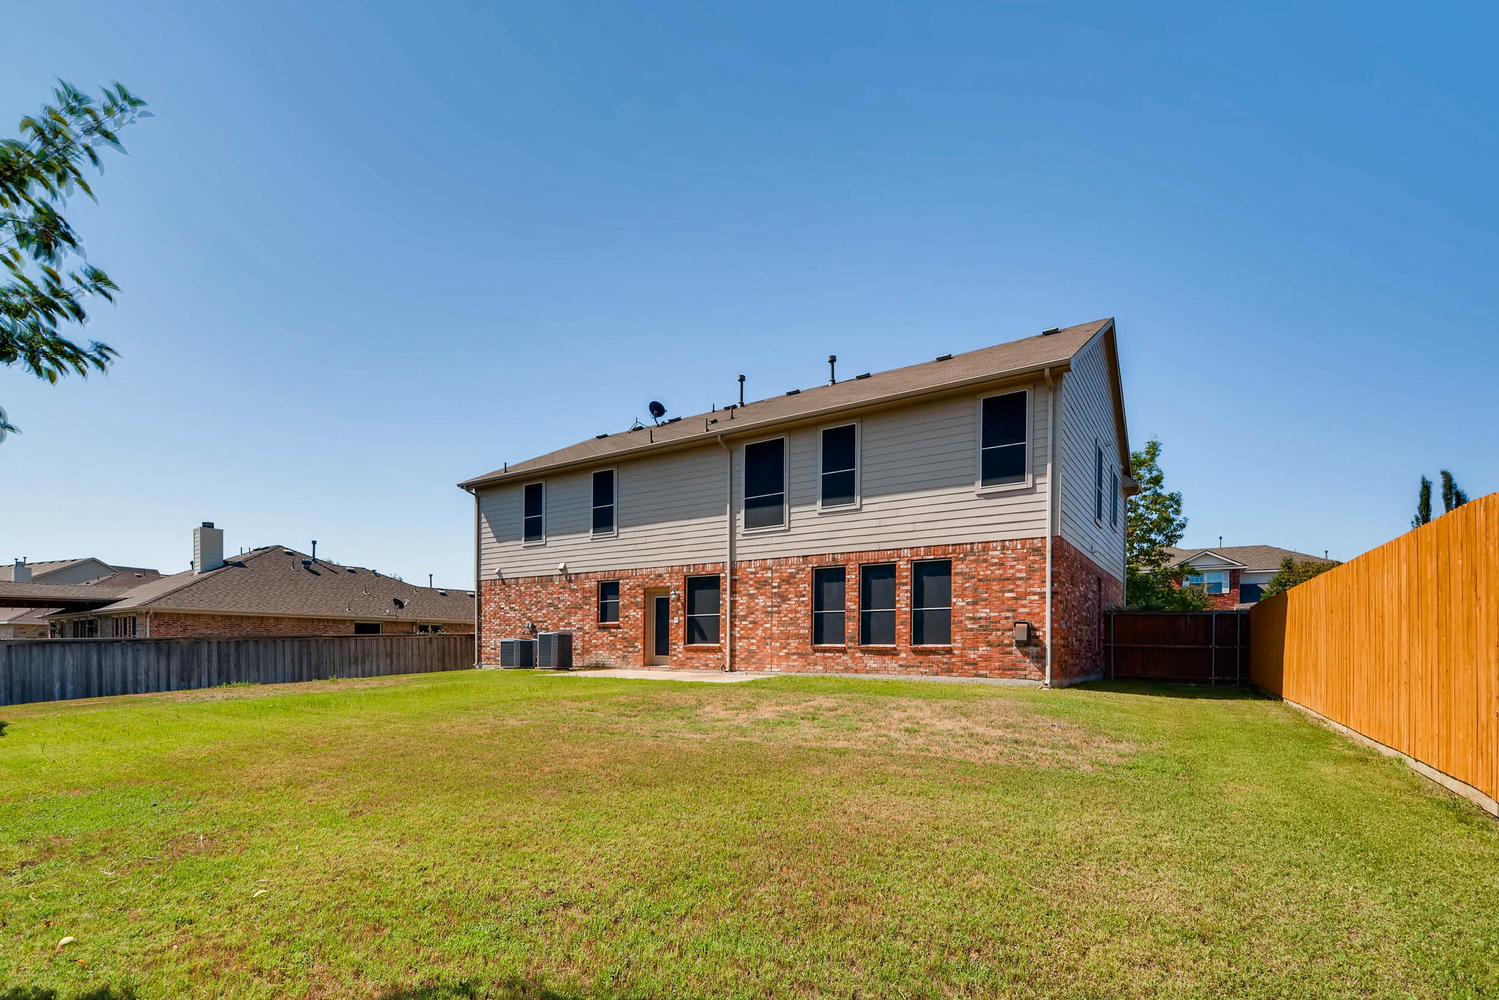 Photo of 2103 Sumac Dr, Forney, TX, 75126